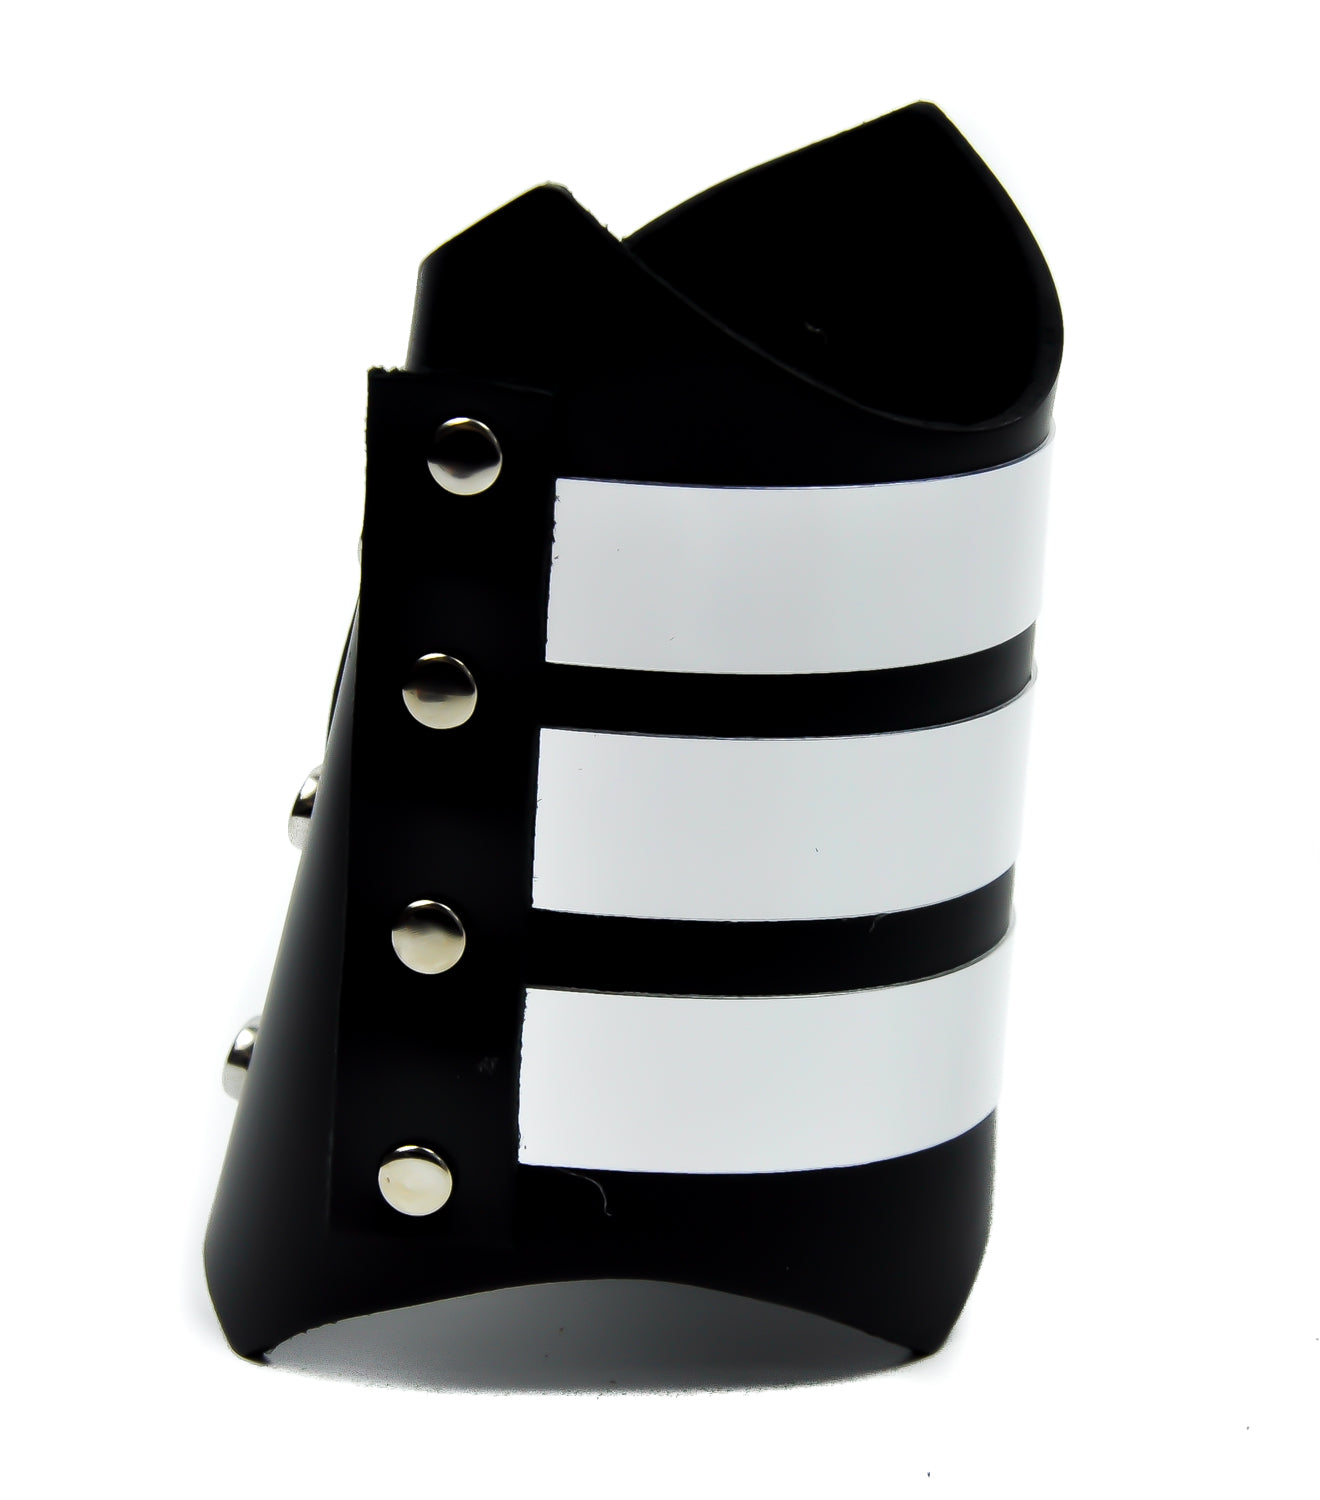 Metal Strip Armband Real Leather Wristband Gauntlet Alternative Clothing